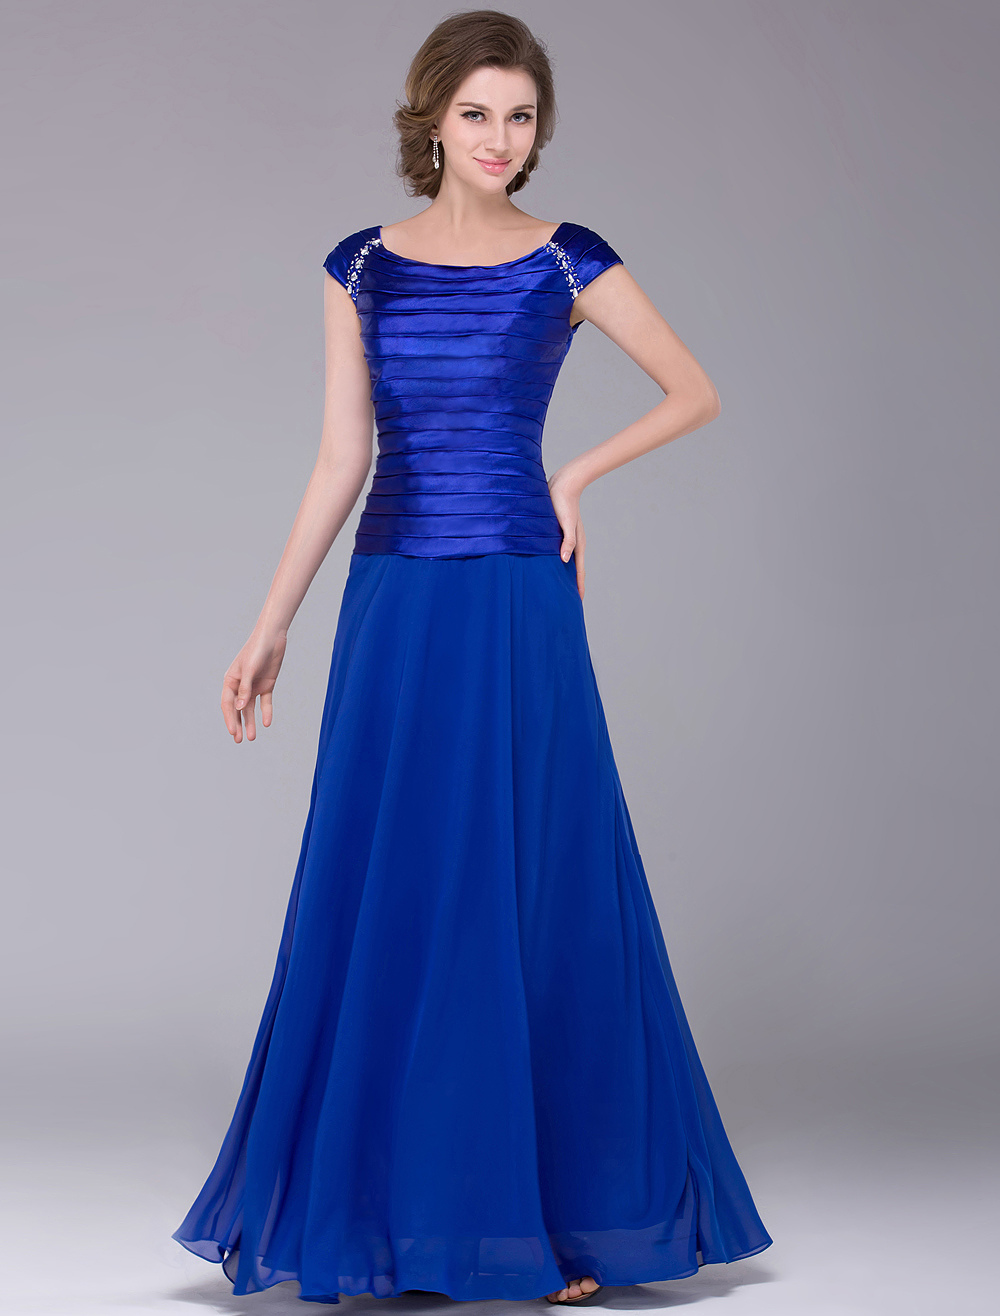 Buy Royal Blue Scoop Neck A-line Chiffon Mother of the Bride Dress for $116.99 in Milanoo store